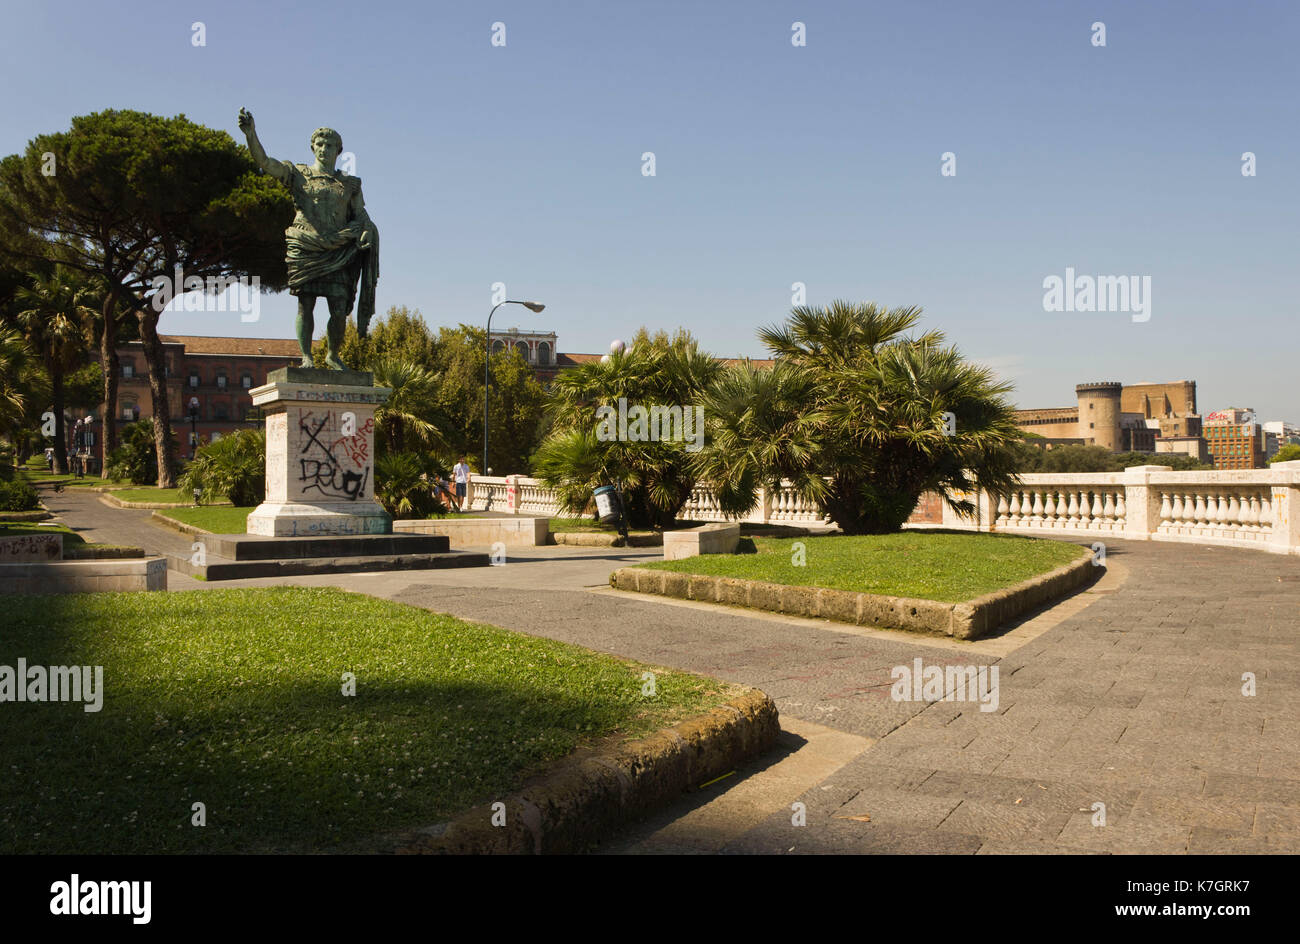 Welcome Statues Garden Naples Italy August 10 2014 Statue Of Cesario Console On The